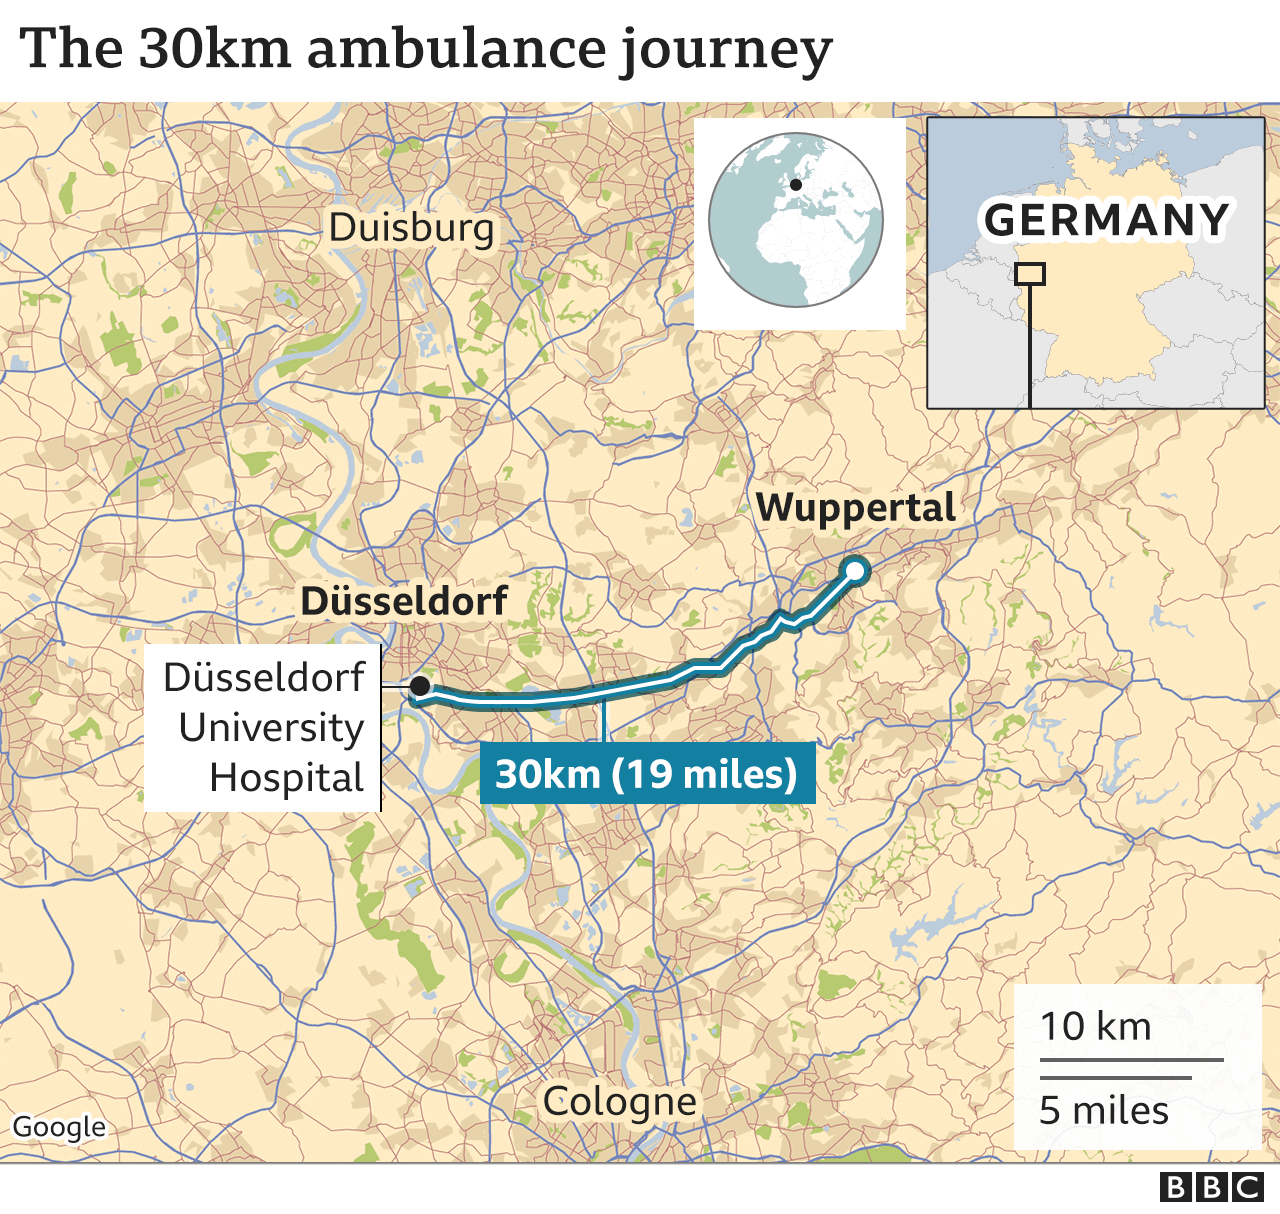 A map shows the distance from Dusseldorf to Wuppertal in Germany